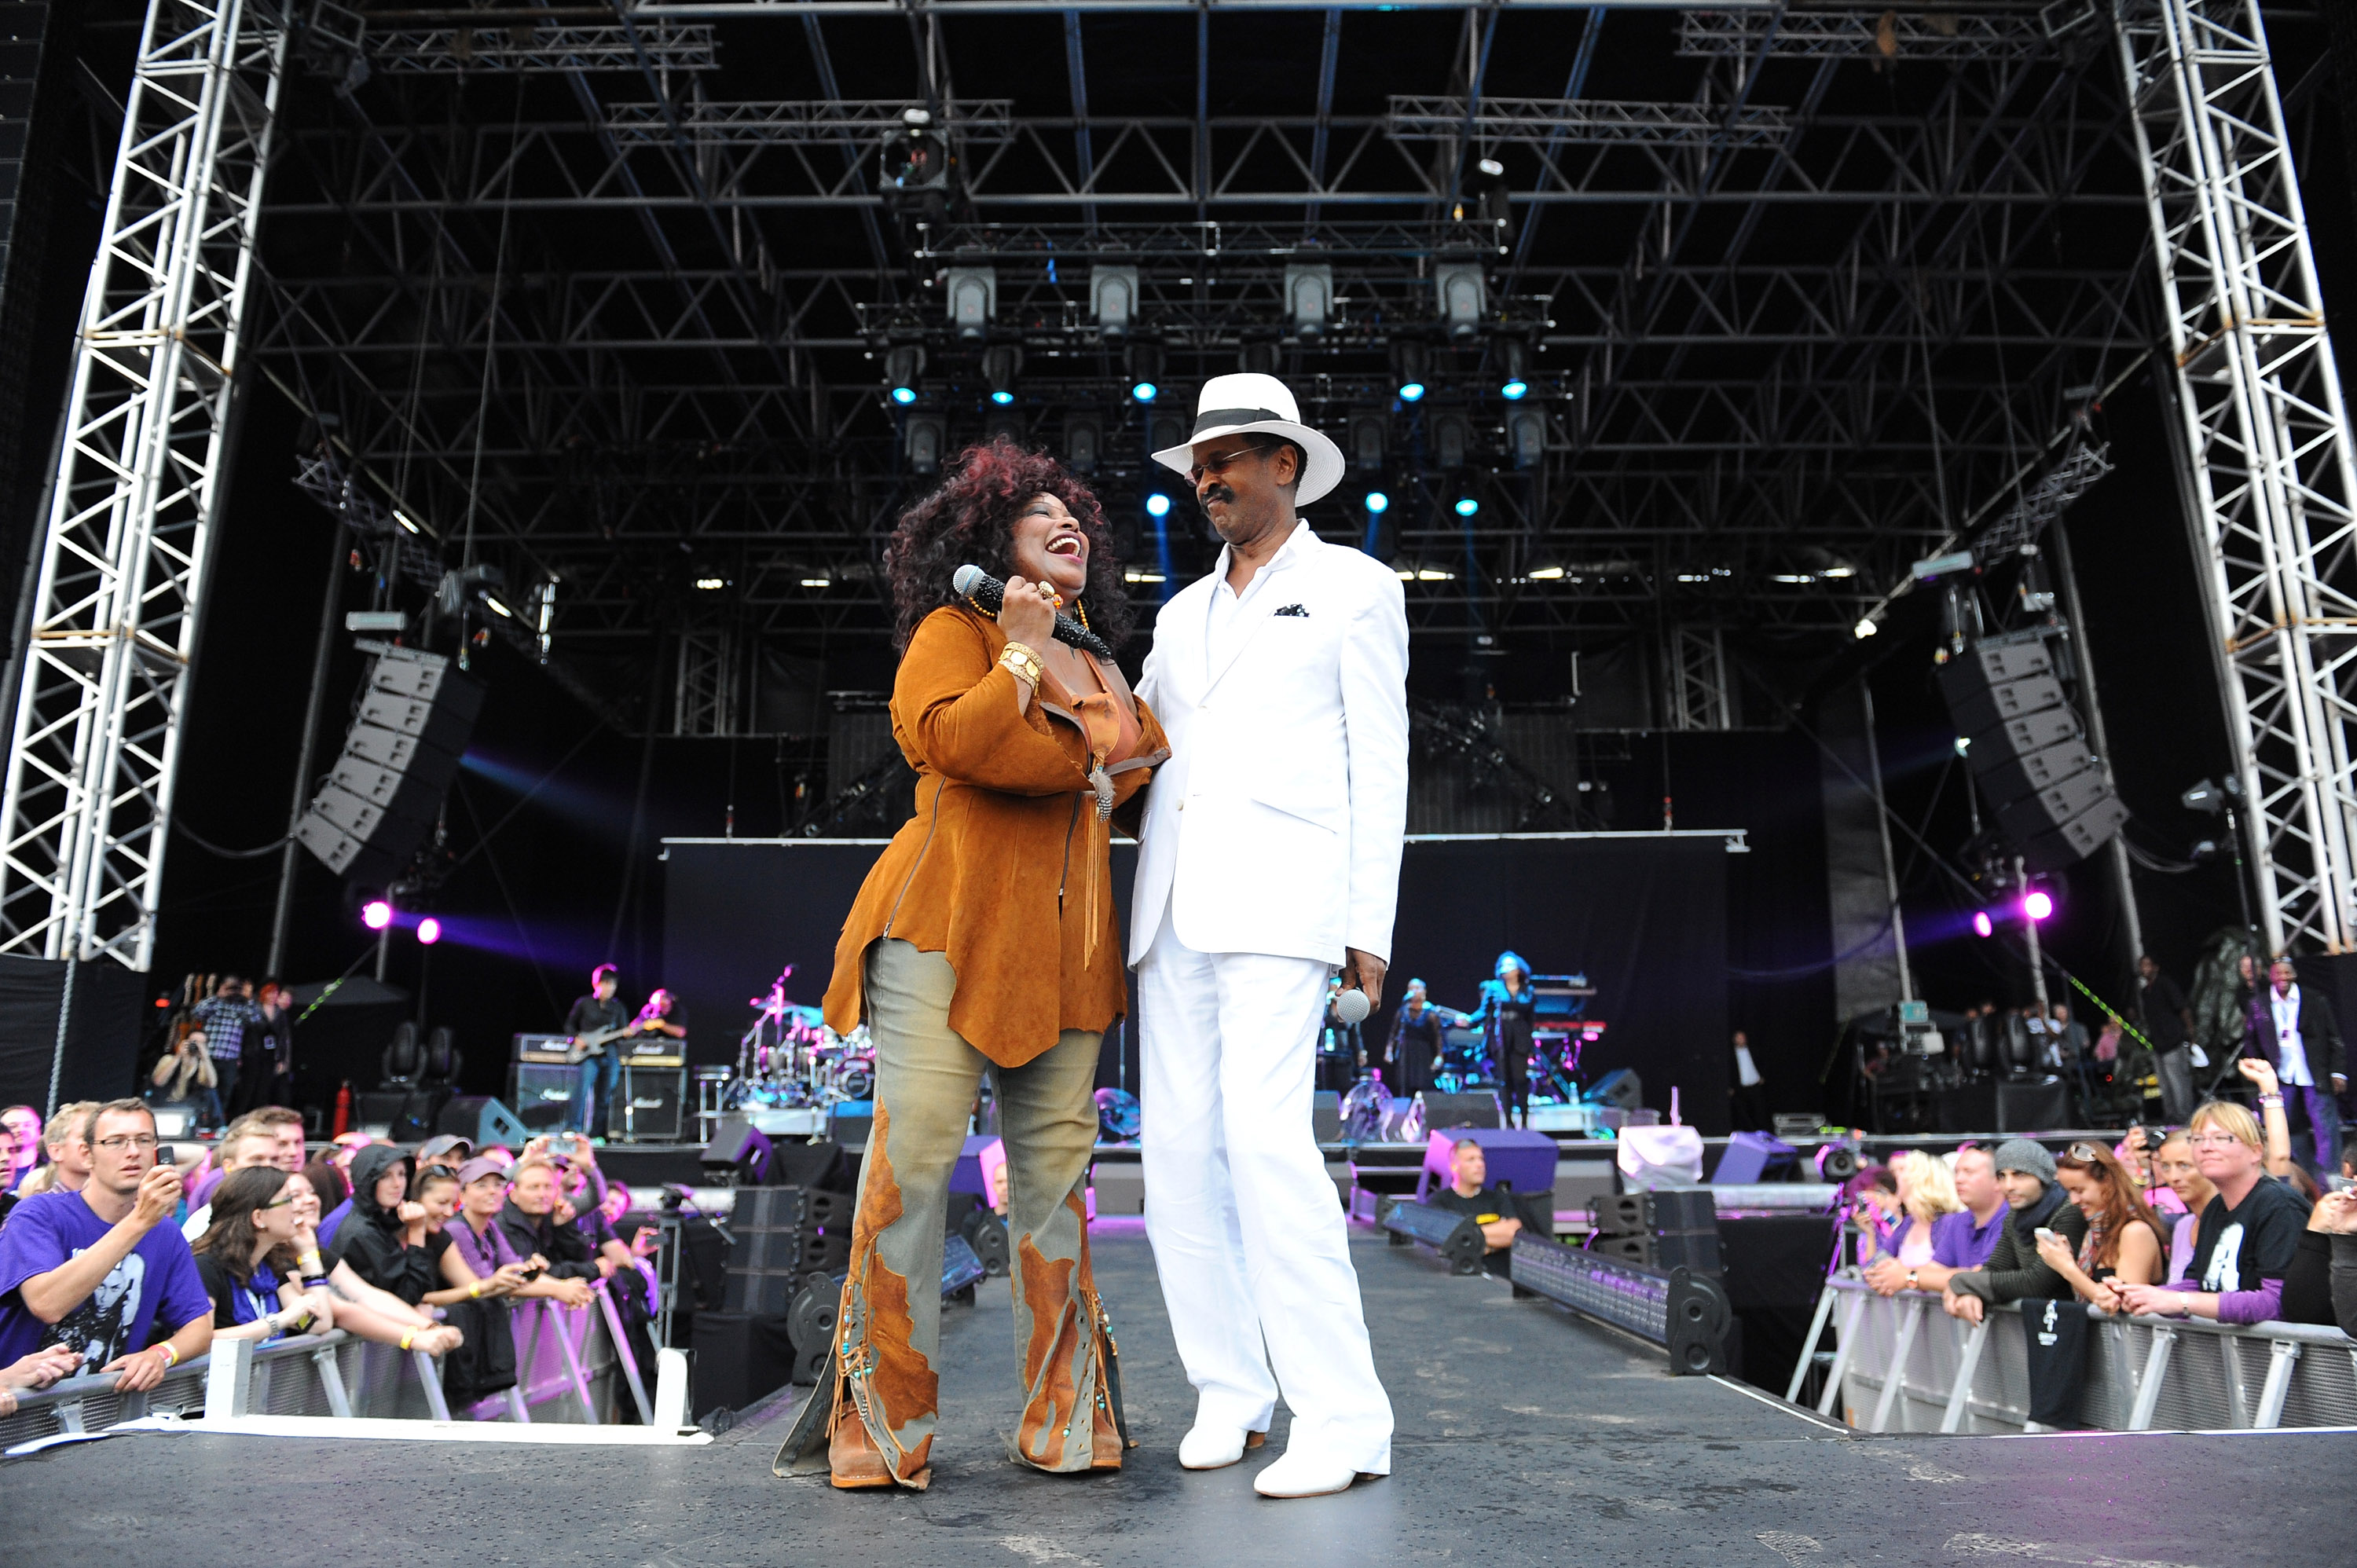 Chaka Khan & Larry Graham Performing At NPG Music & Arts Festival. NPG Records 2011